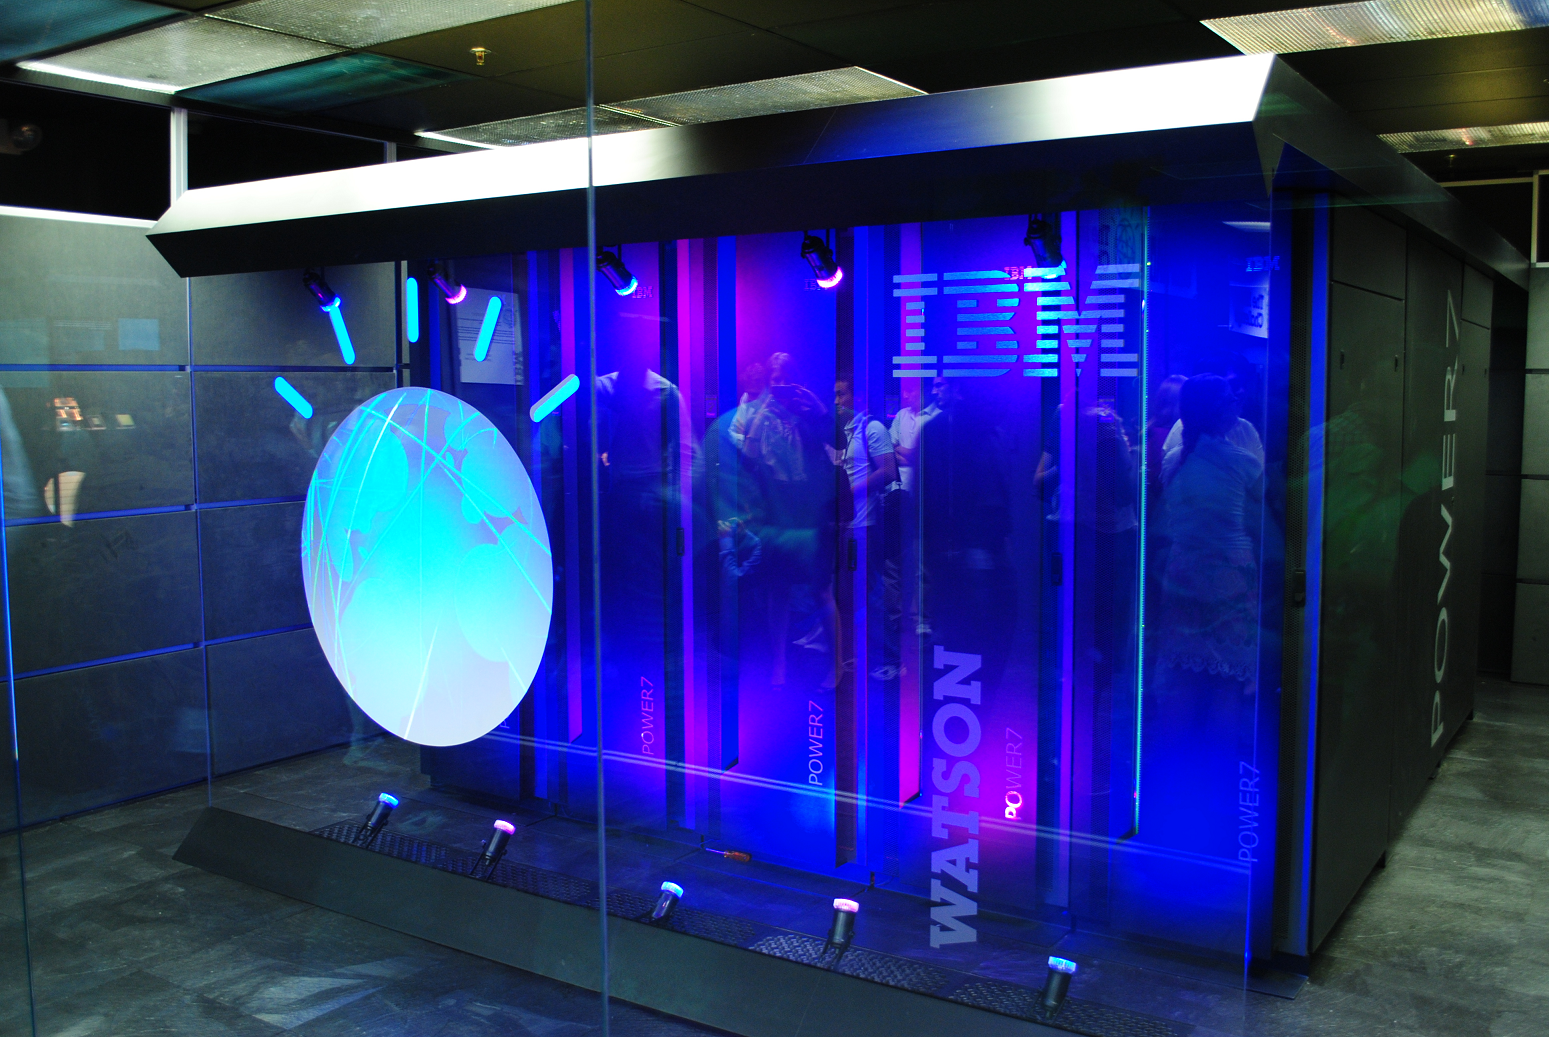 <b>Exploring the Frontiers of Machine Learning</b> &#8211; On October 7, 2014 Brian attended an all day event to launch IBM&#8217;s new Watson Center at 51 Astor Place in NYC. (SOURCE: Wikipedia CC BY-SA 3.0)